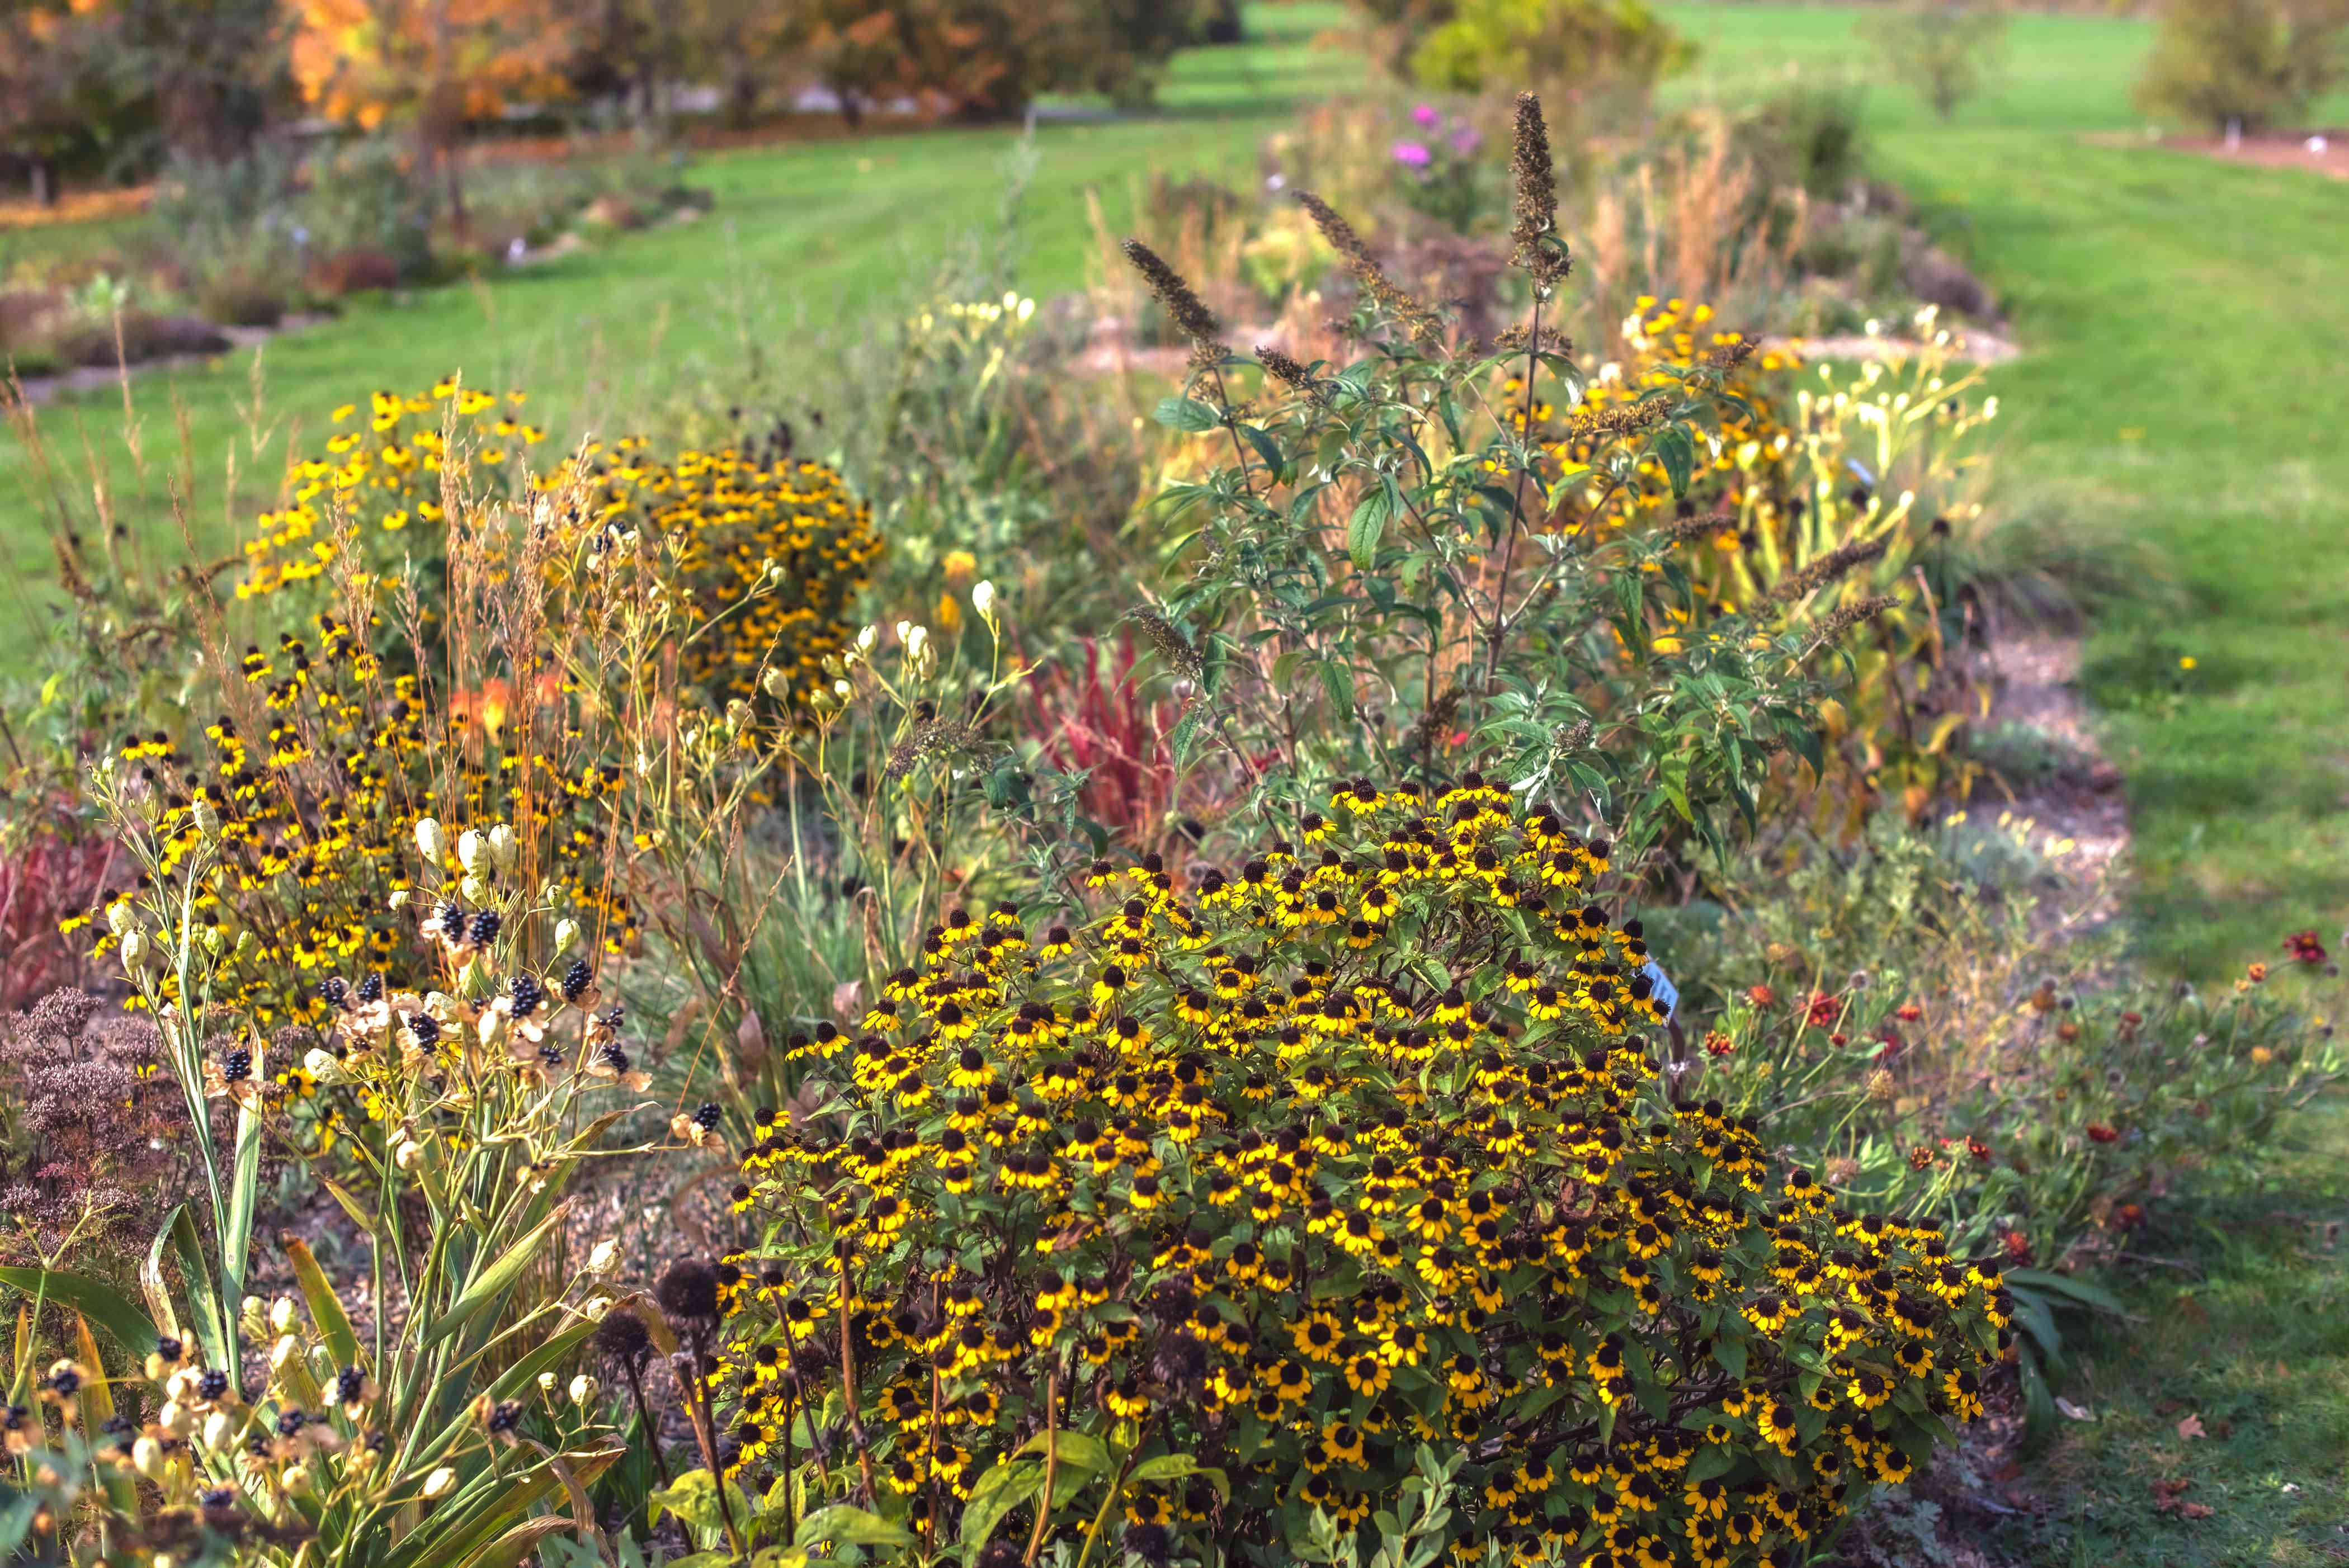 Brown-eyed susan wildflowers clustered on thin stems and small yellows flowers in flower garden